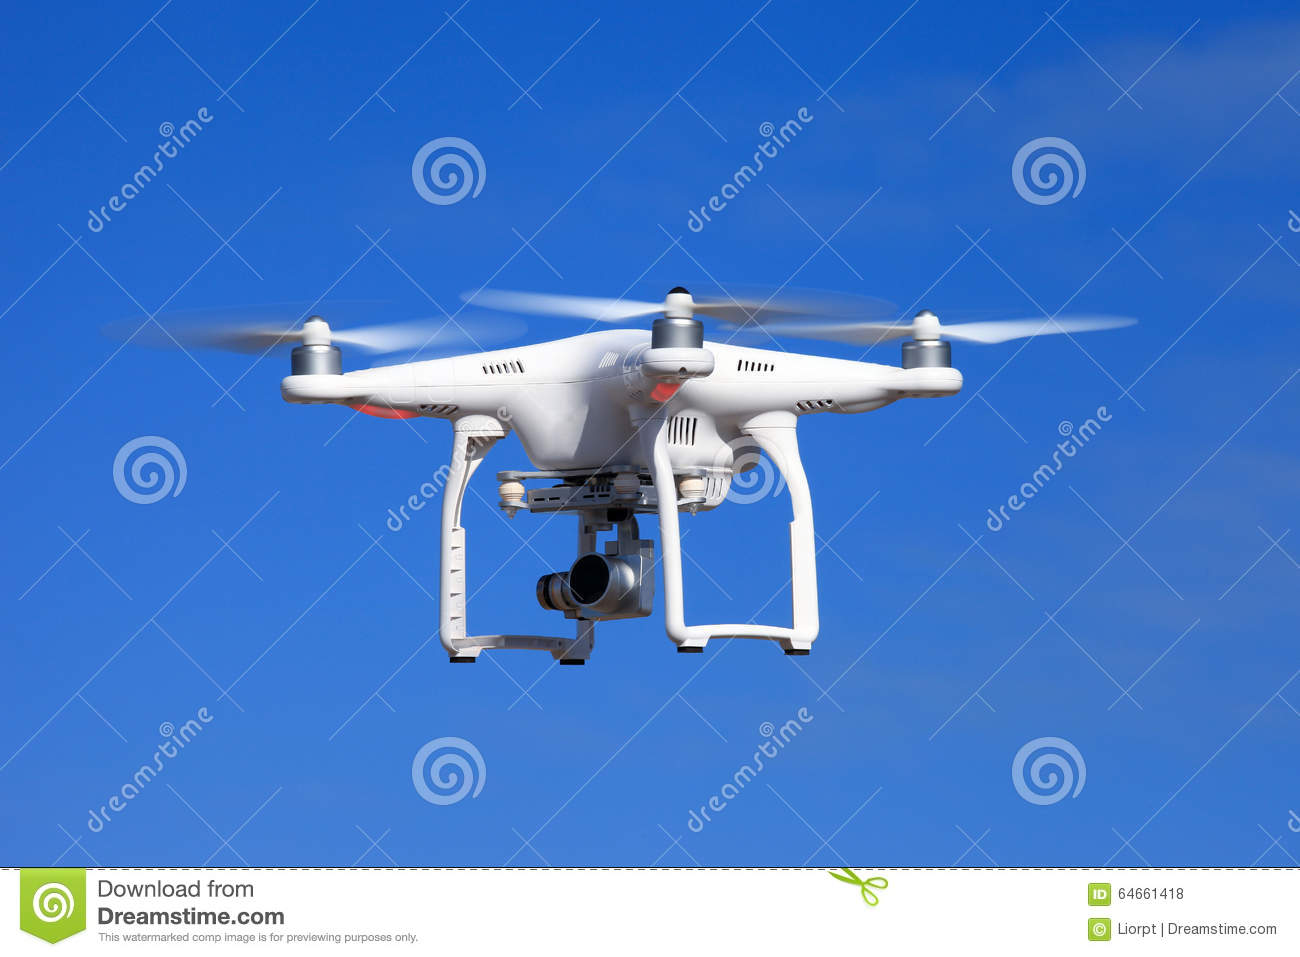 helicopter spy camera with Stock Photo White Drone Equipped High Resolution K Video Camera Hovering Mid Air Image64661418 on Drone Camera moreover Stock Photo White Drone Equipped High Resolution K Video Camera Hovering Mid Air Image64661418 further Product product id 2133 besides Stock Photo Flying Drone Video Camera Spy Photo Big Brother Propelled Spying Towns Streets Below Image44467619 further Drone Ambulance.